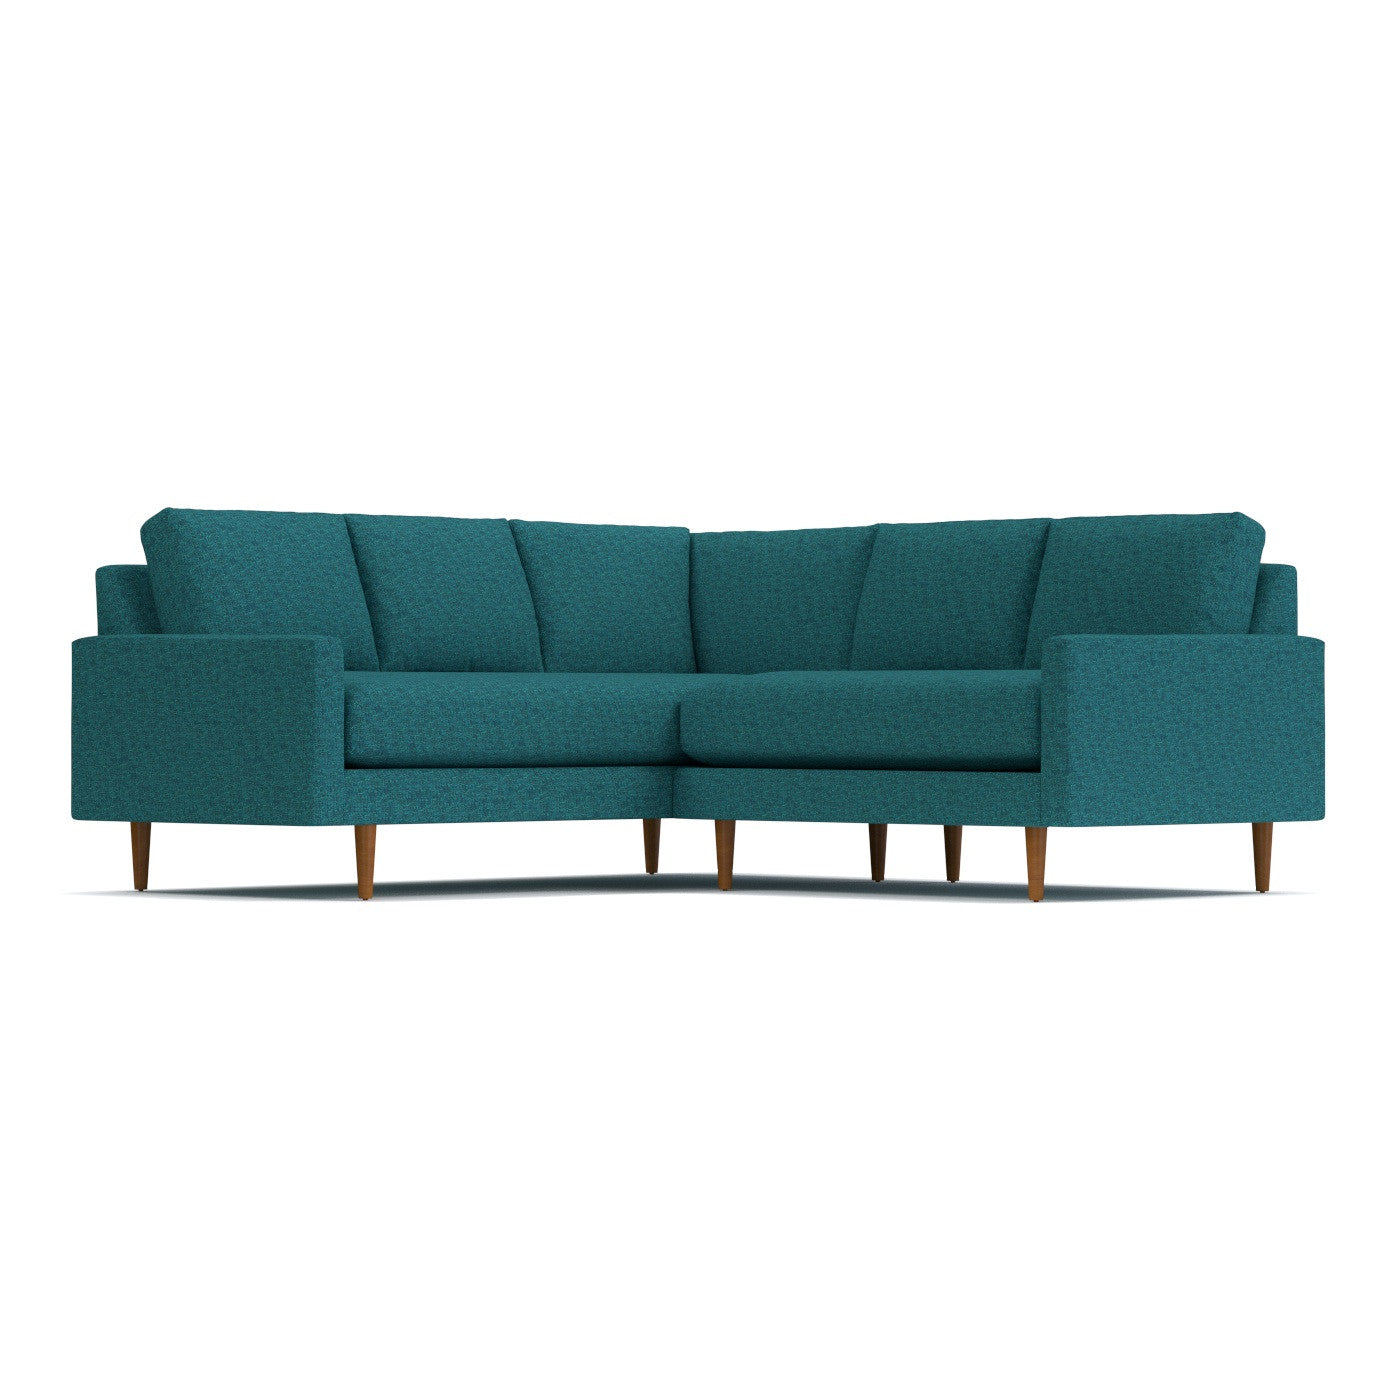 Scott 2pc L-Sectional Sofa from Kyle Schuneman CHOICE OF FABRICS